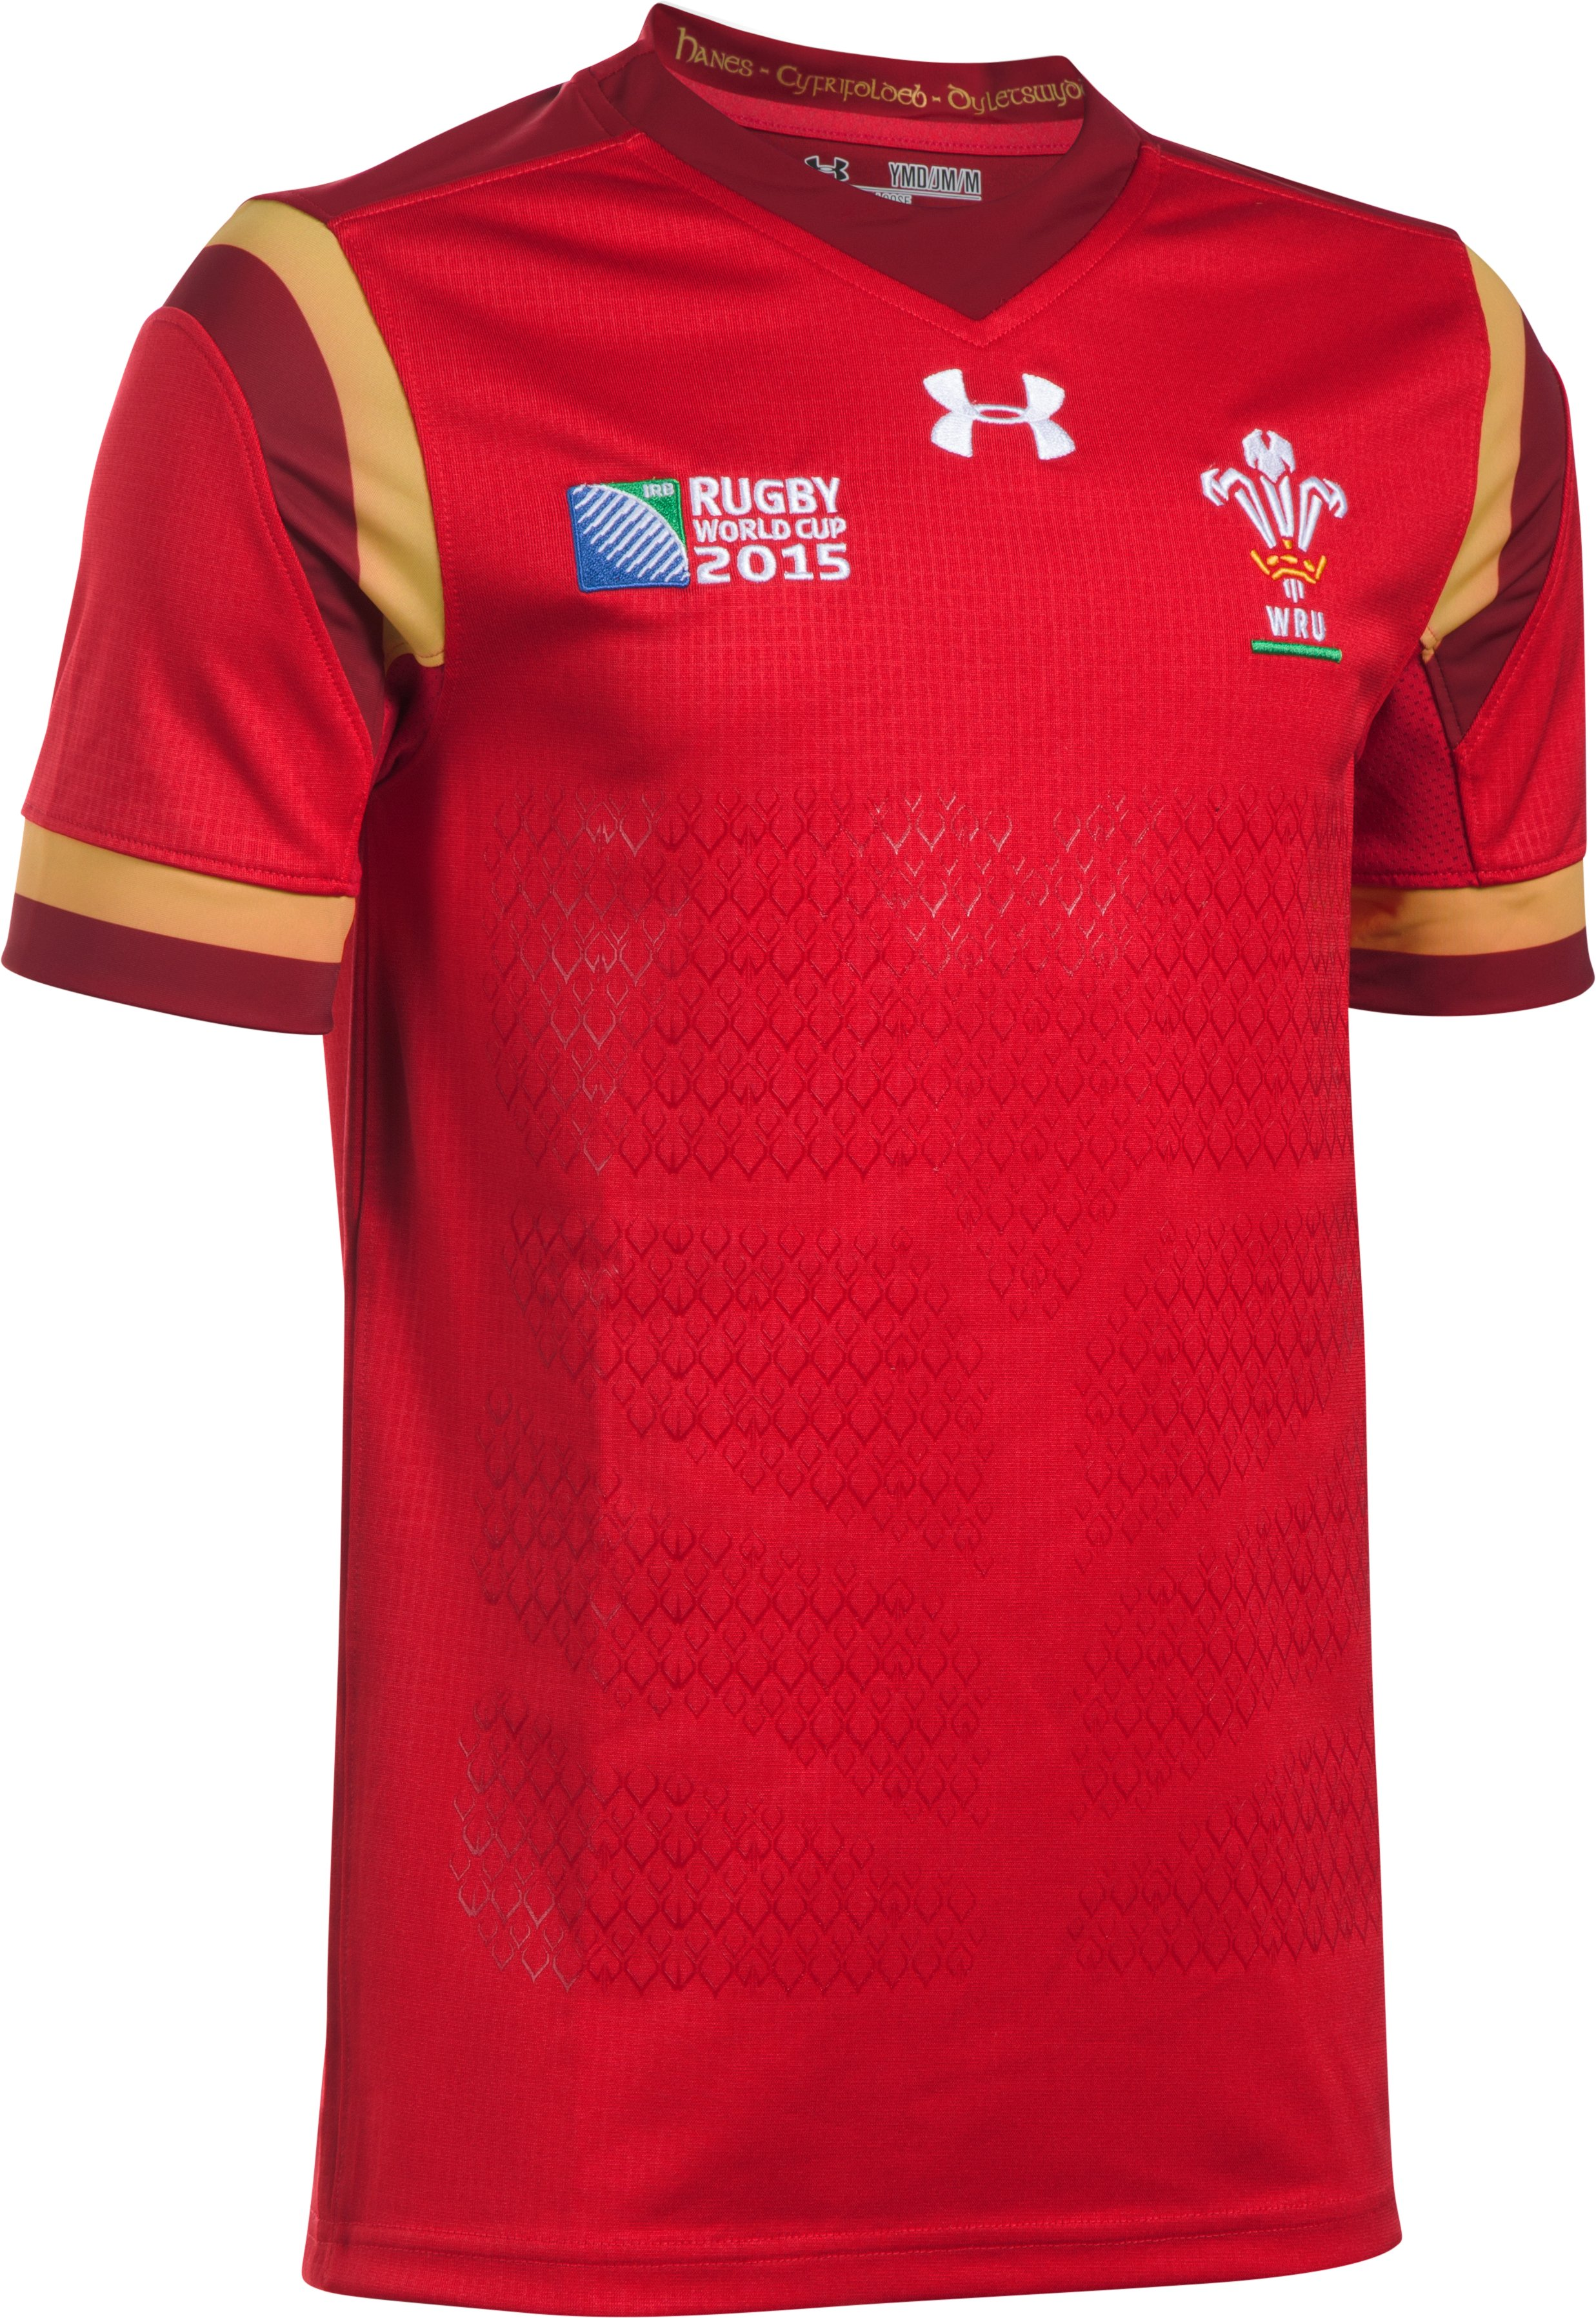 Boys' WRU Supporters 15/16 Jersey, Red